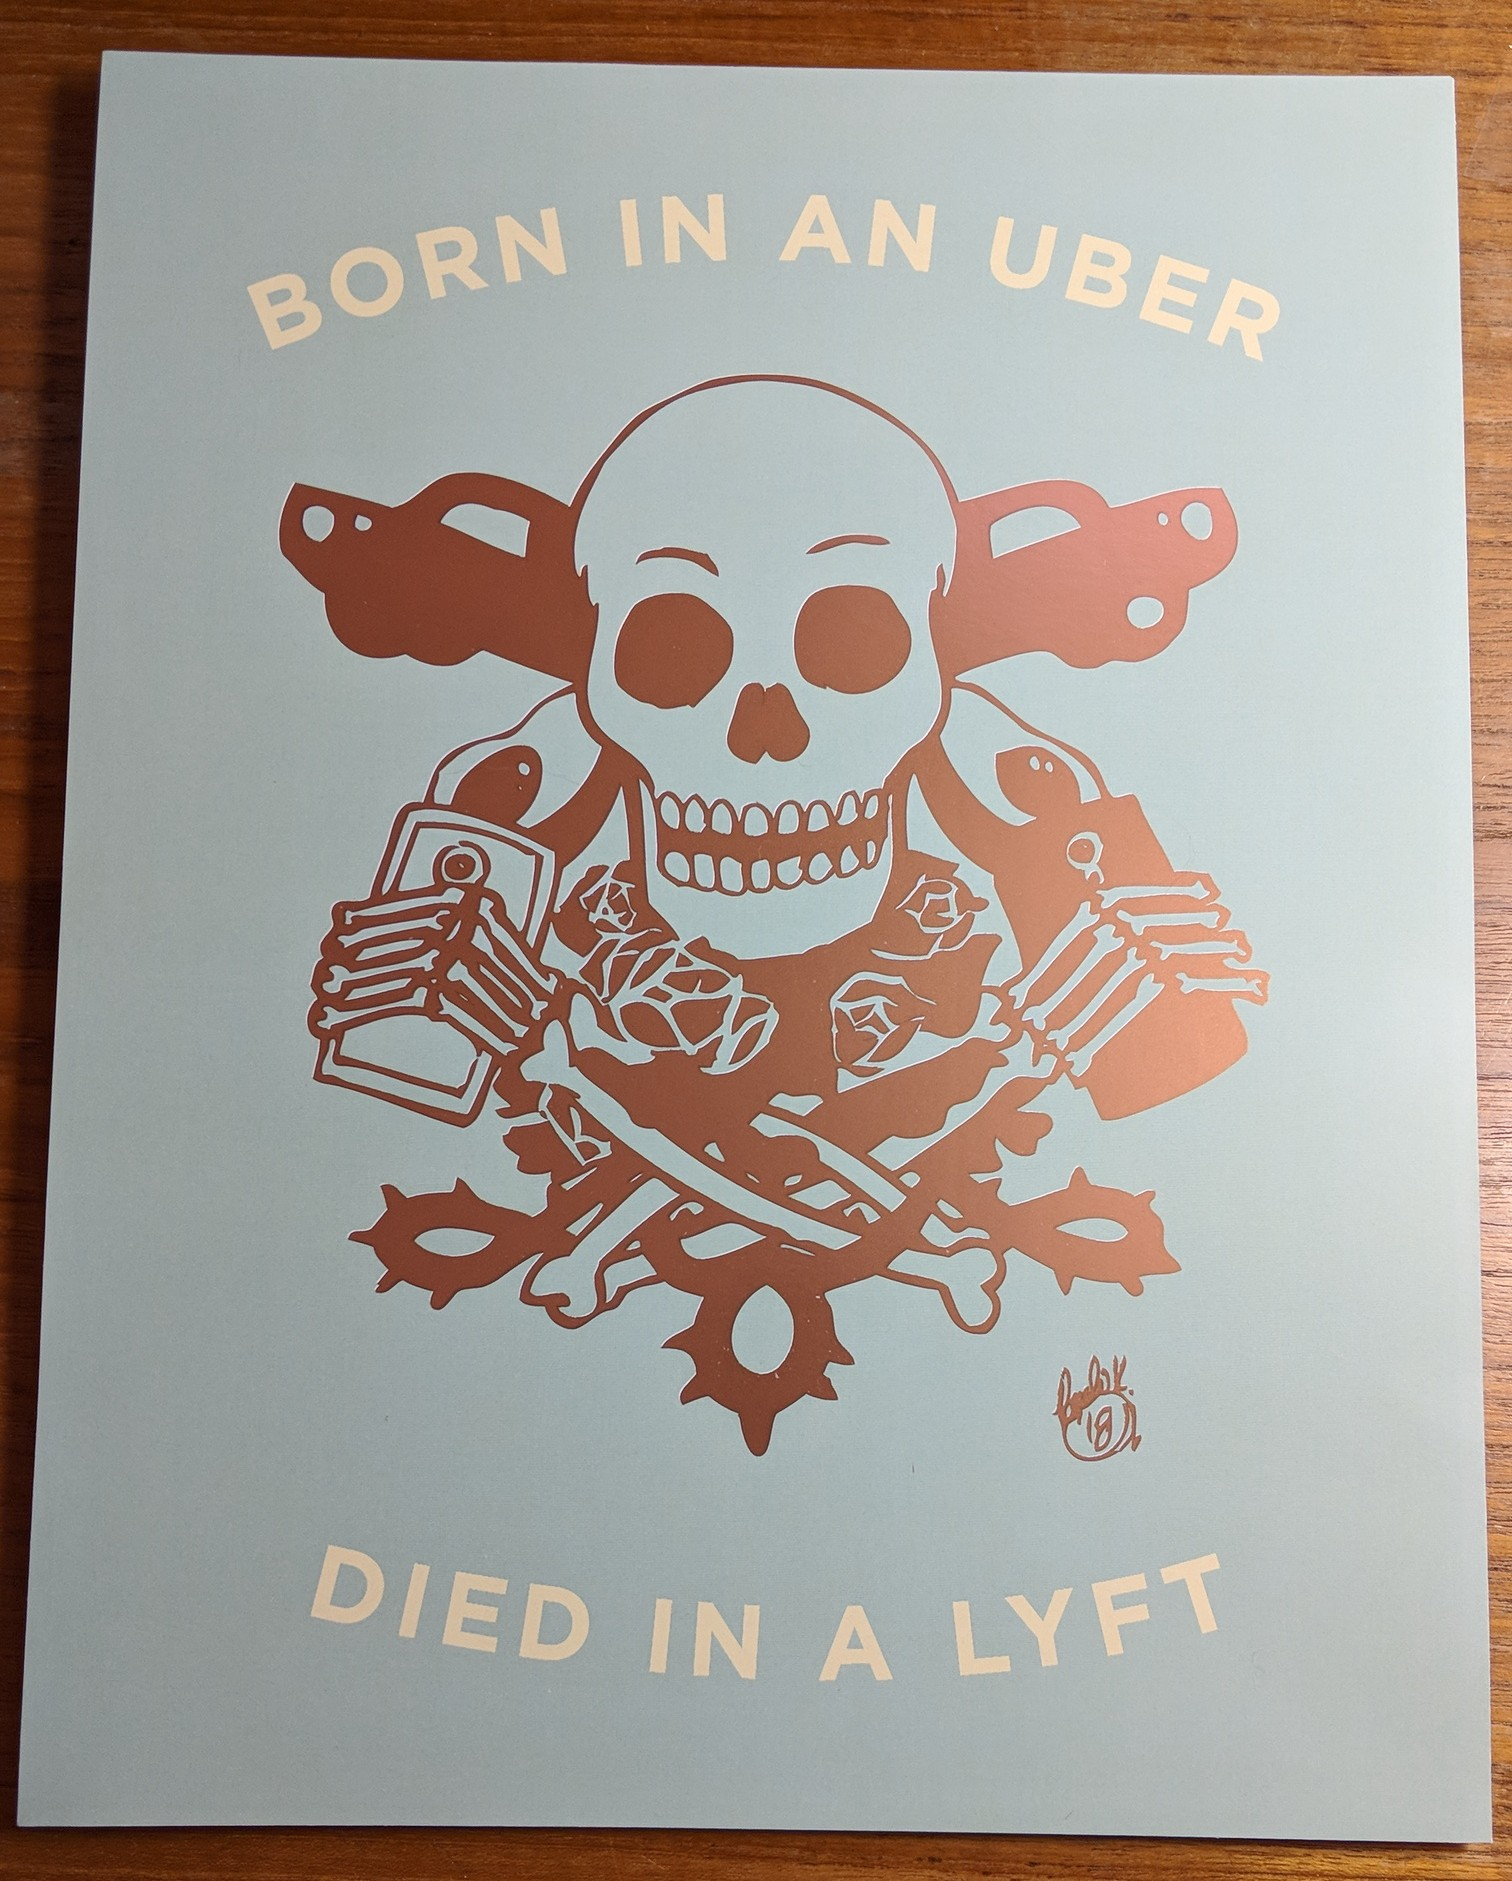 A skeleton holding two smartphones, surrounded by cars, avocados and roses. Text says BORN IN AN UBER, DIED IN A LYFT.